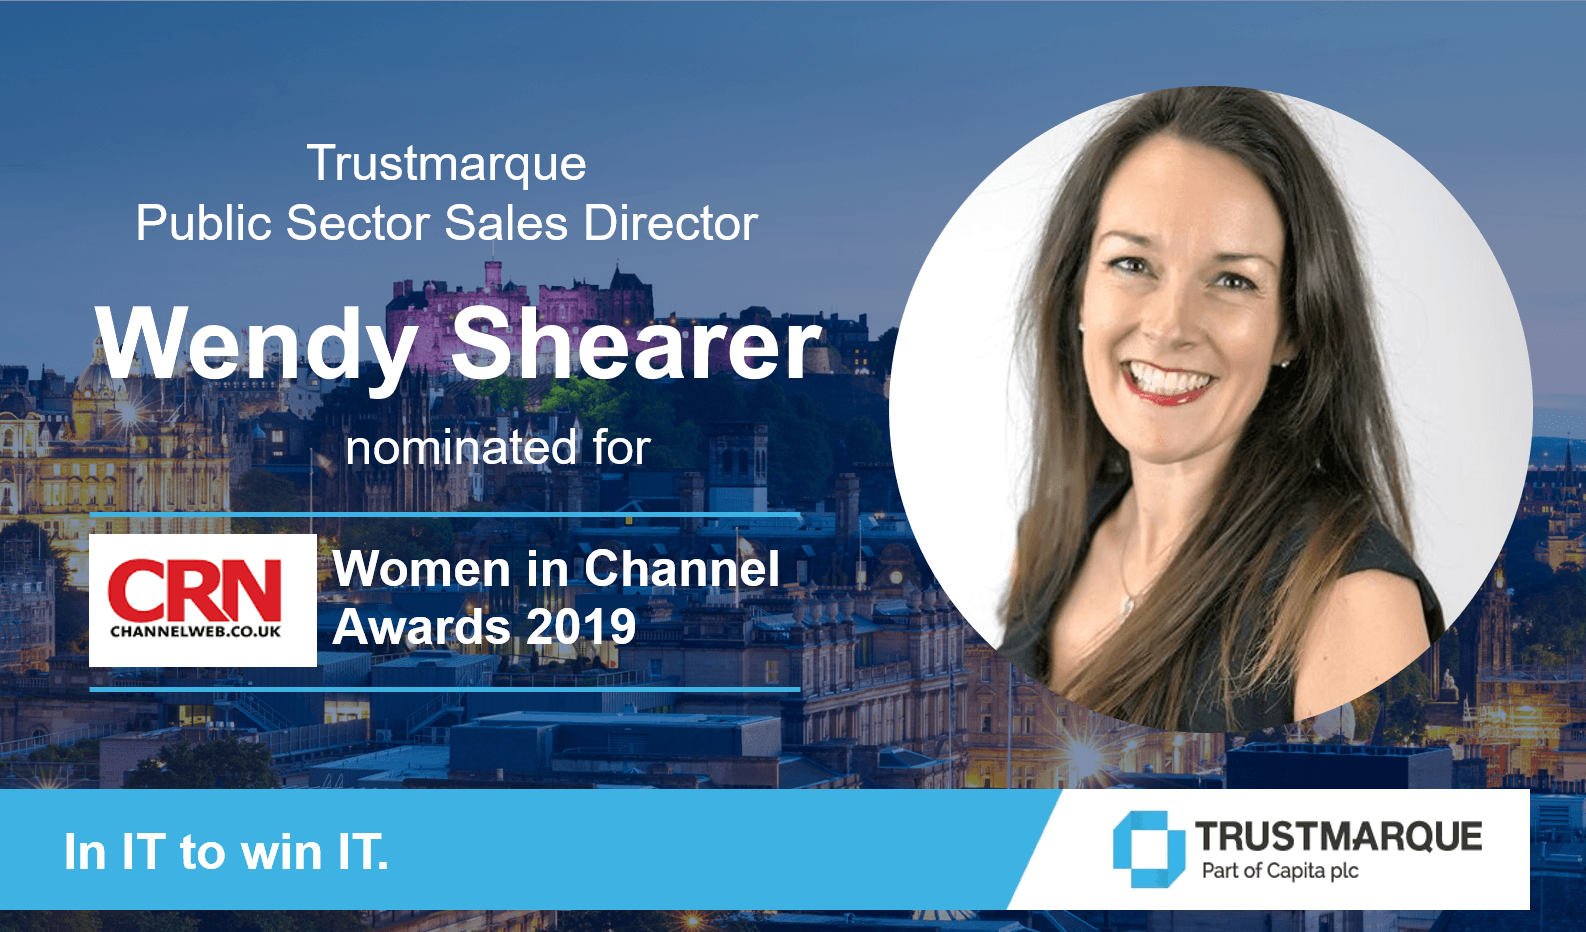 Wendy Shearer nominated for CRN Women in Channel Awards